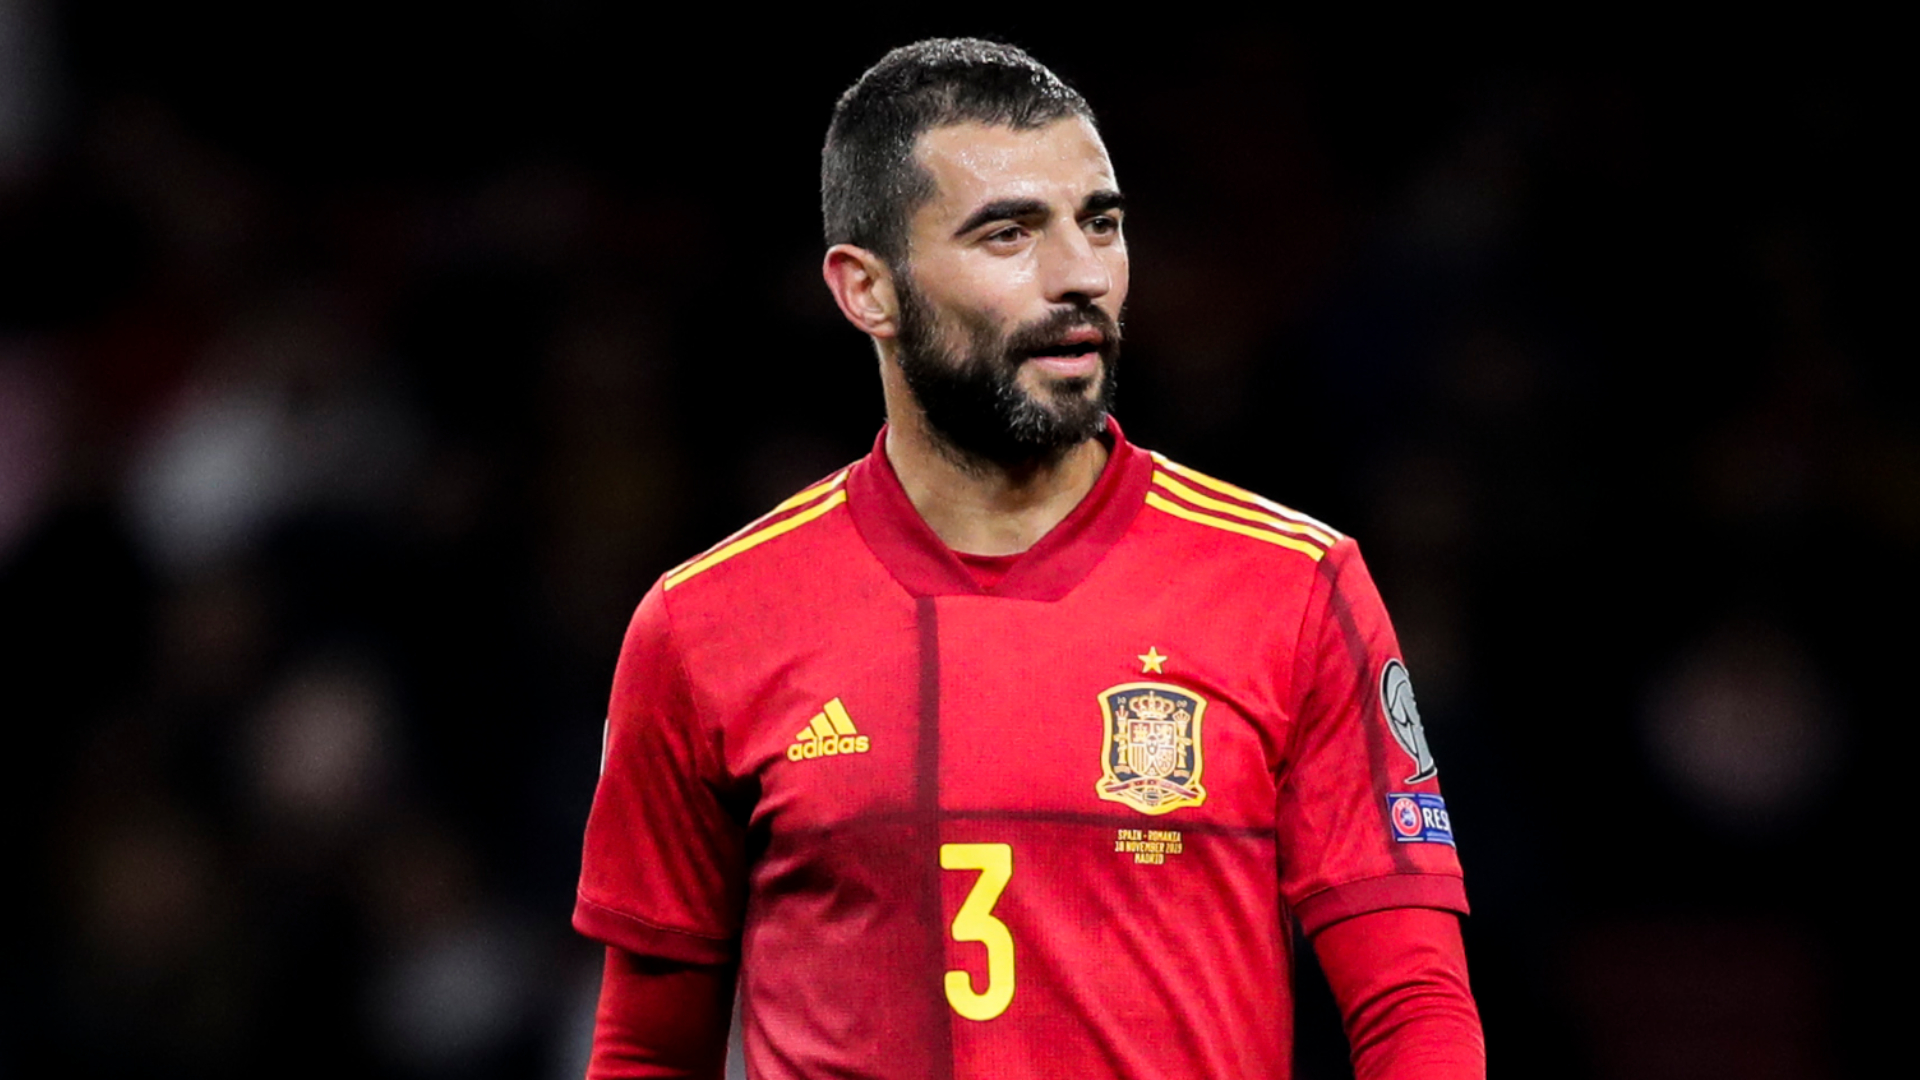 It will be a Spain Under-21 side that face Lithuania on Tuesday, as the senior internationals isolate after Sergio Busquets' positive test.